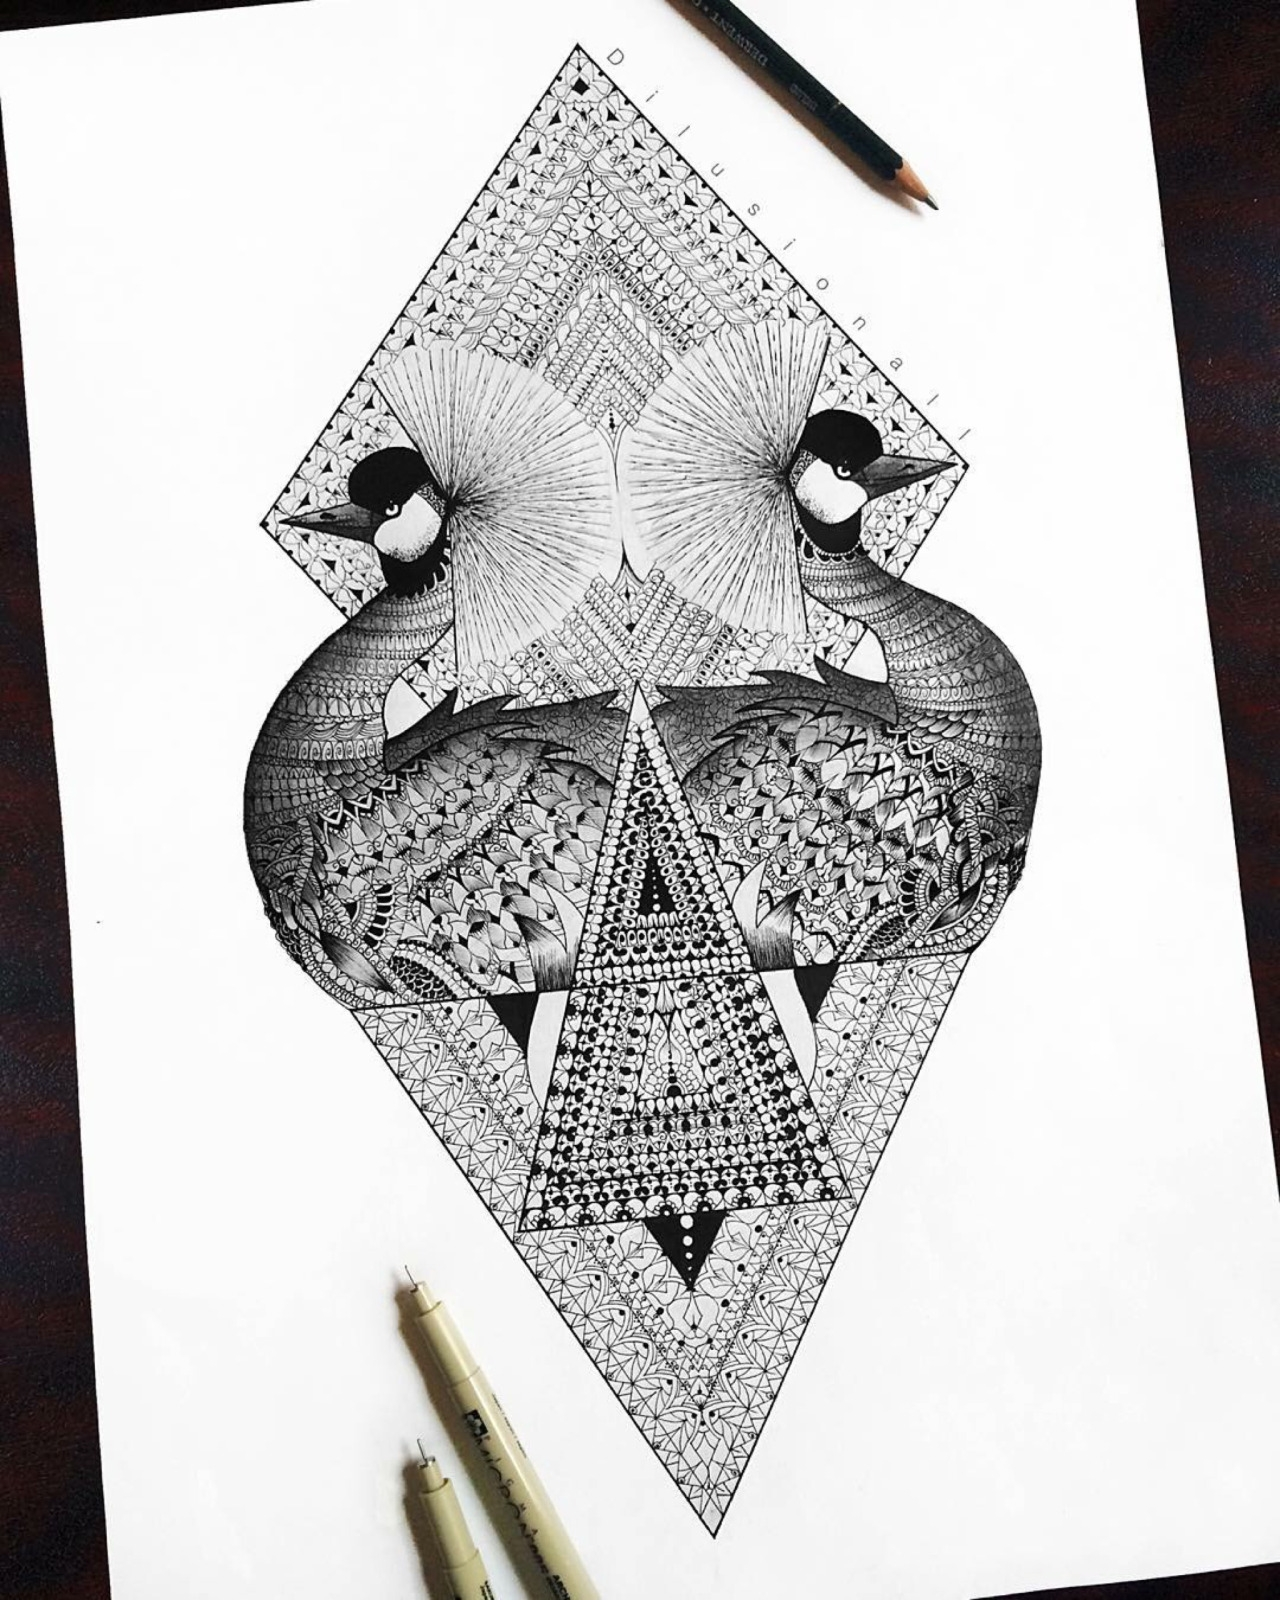 04-East-African-Crowned-Crane-Dilrani-Kauris-Symmetry-and-Style-in-Mandala-and-Mehndi-Drawings-www-designstack-co